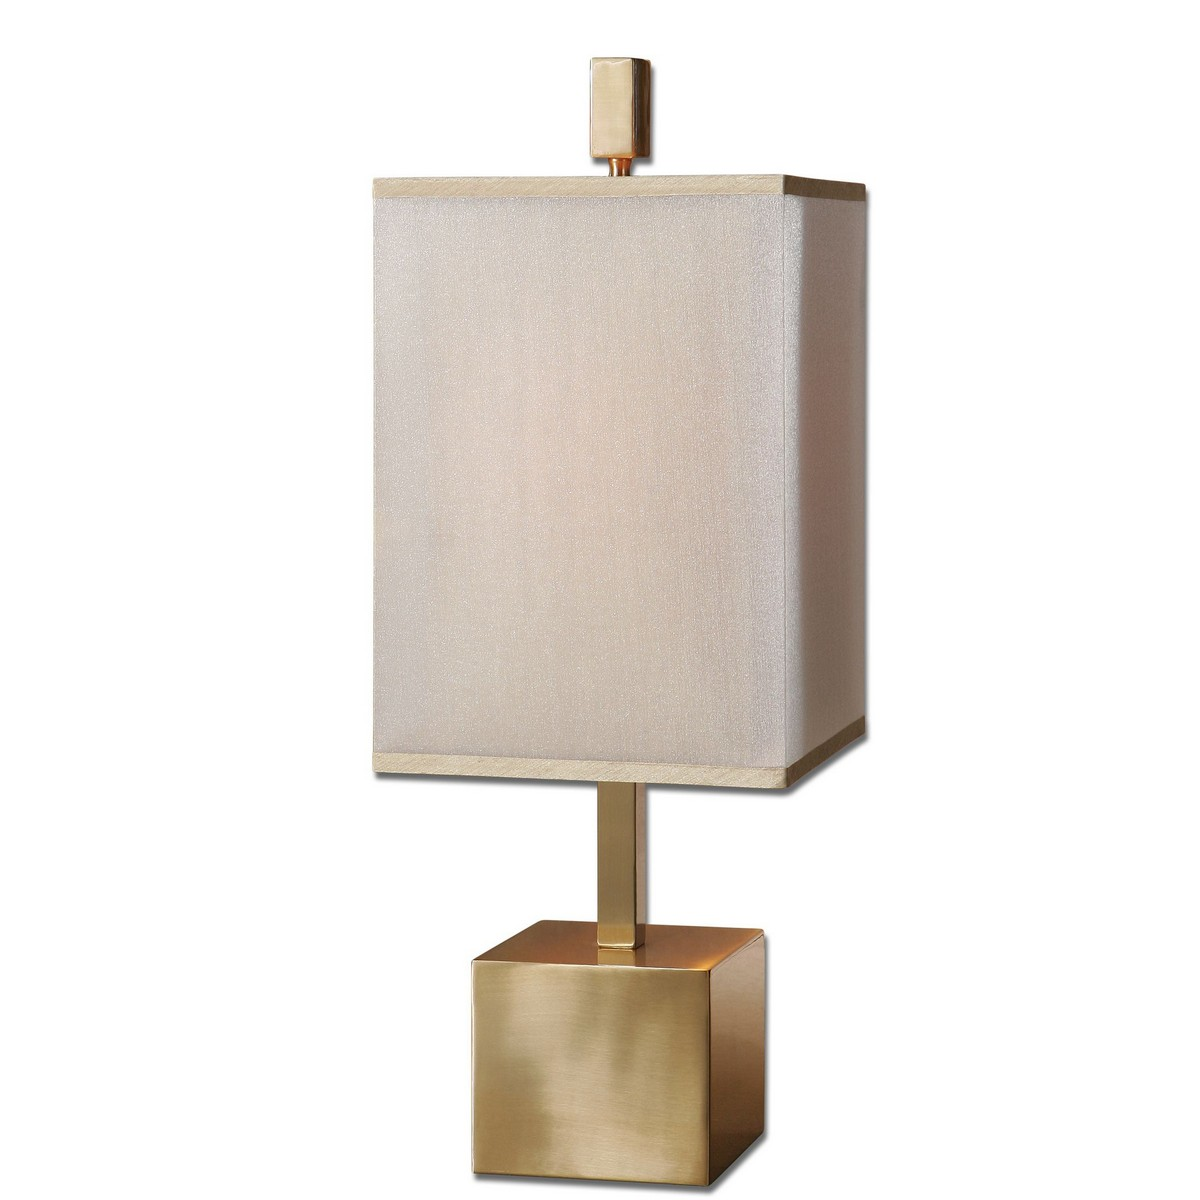 Uttermost Flannigan Brass Accent Lamp 29939-1